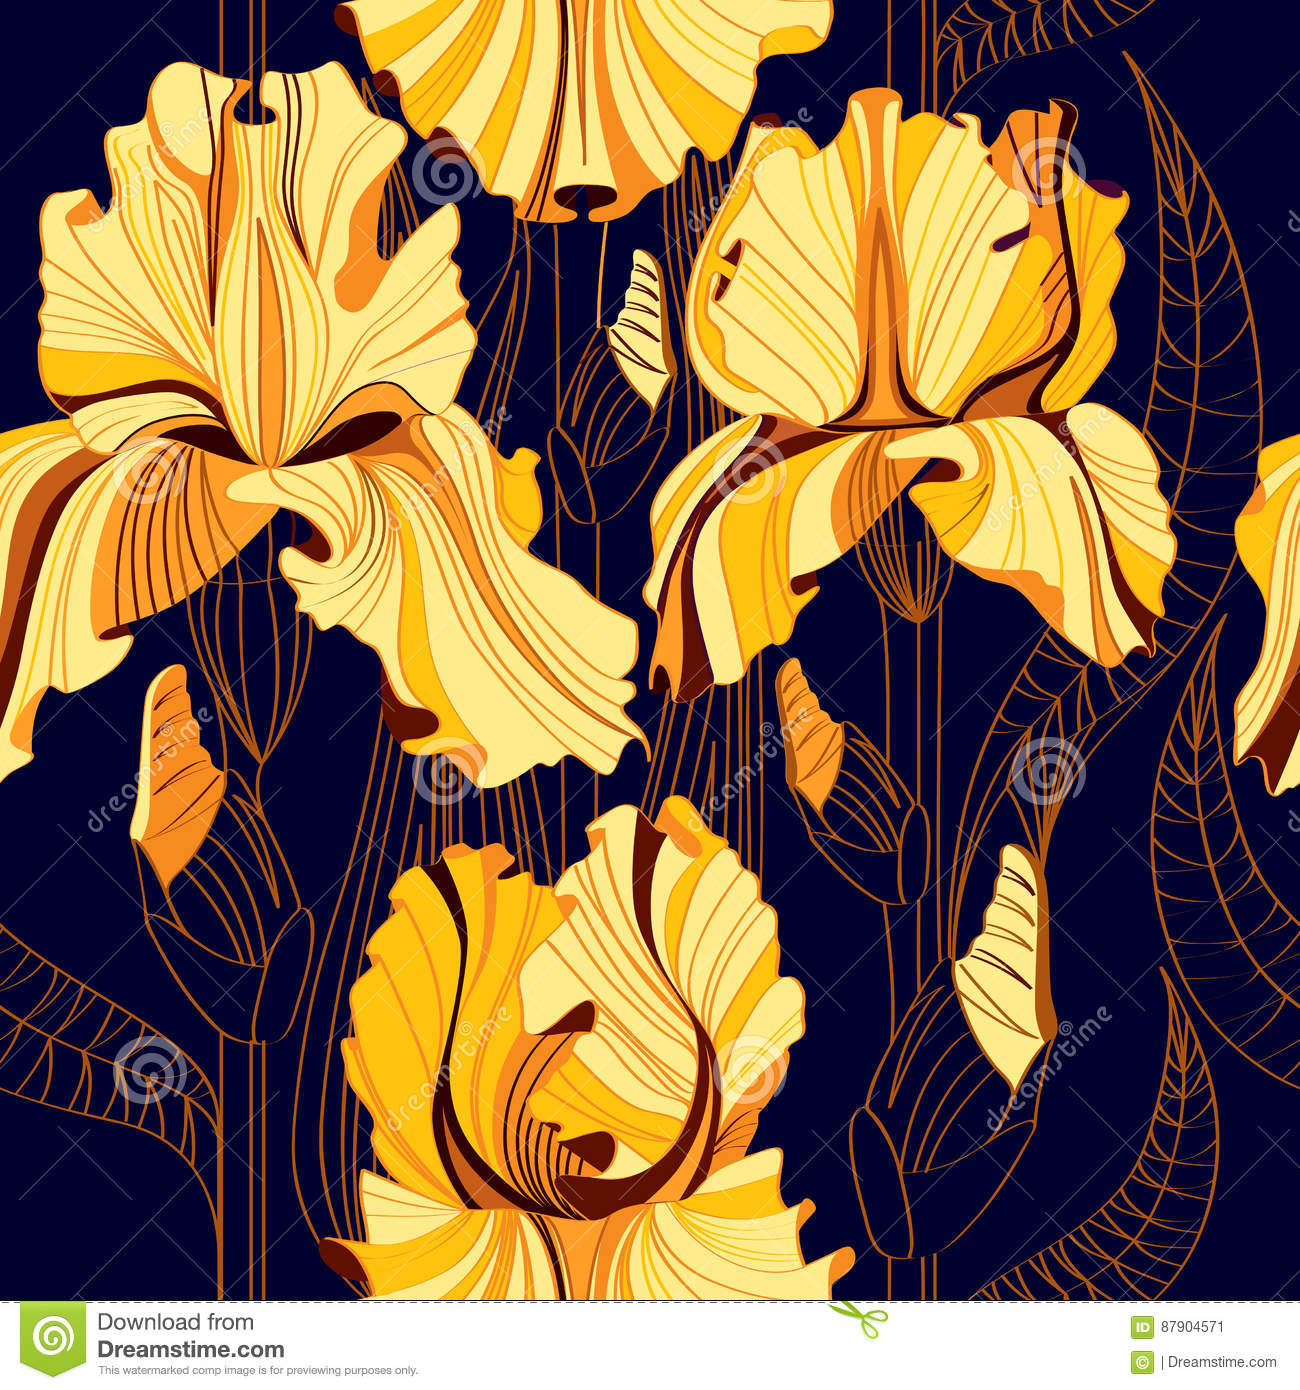 Seamless floral pattern with spring flowers. Vector background with yellow irises.